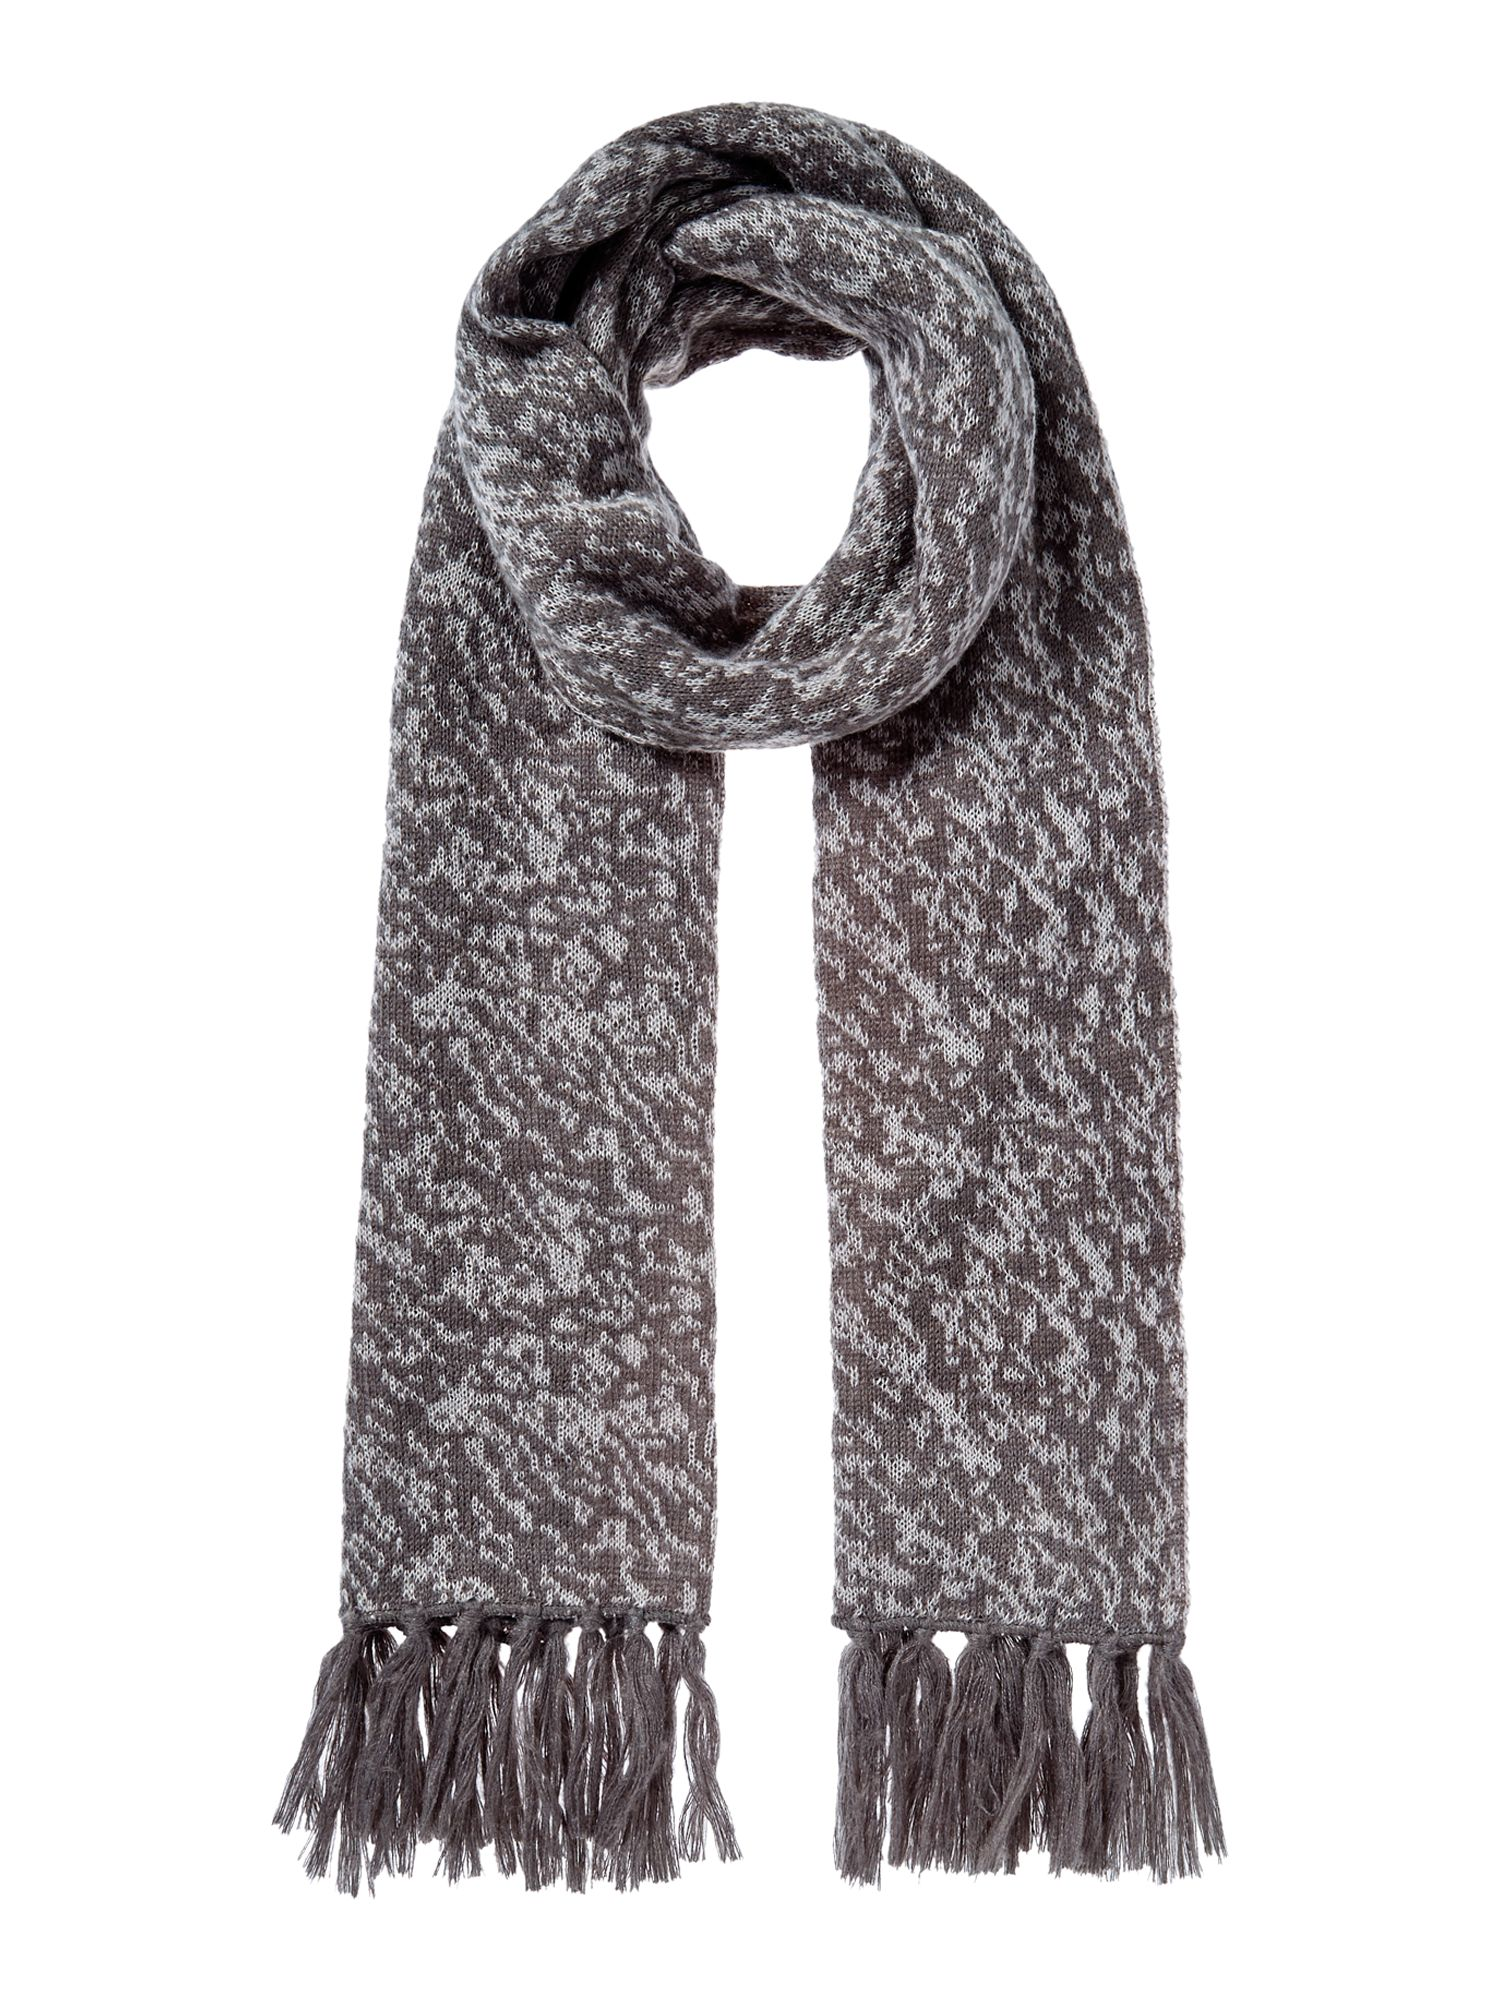 Gray & Willow Marble Knit Scarf Grey